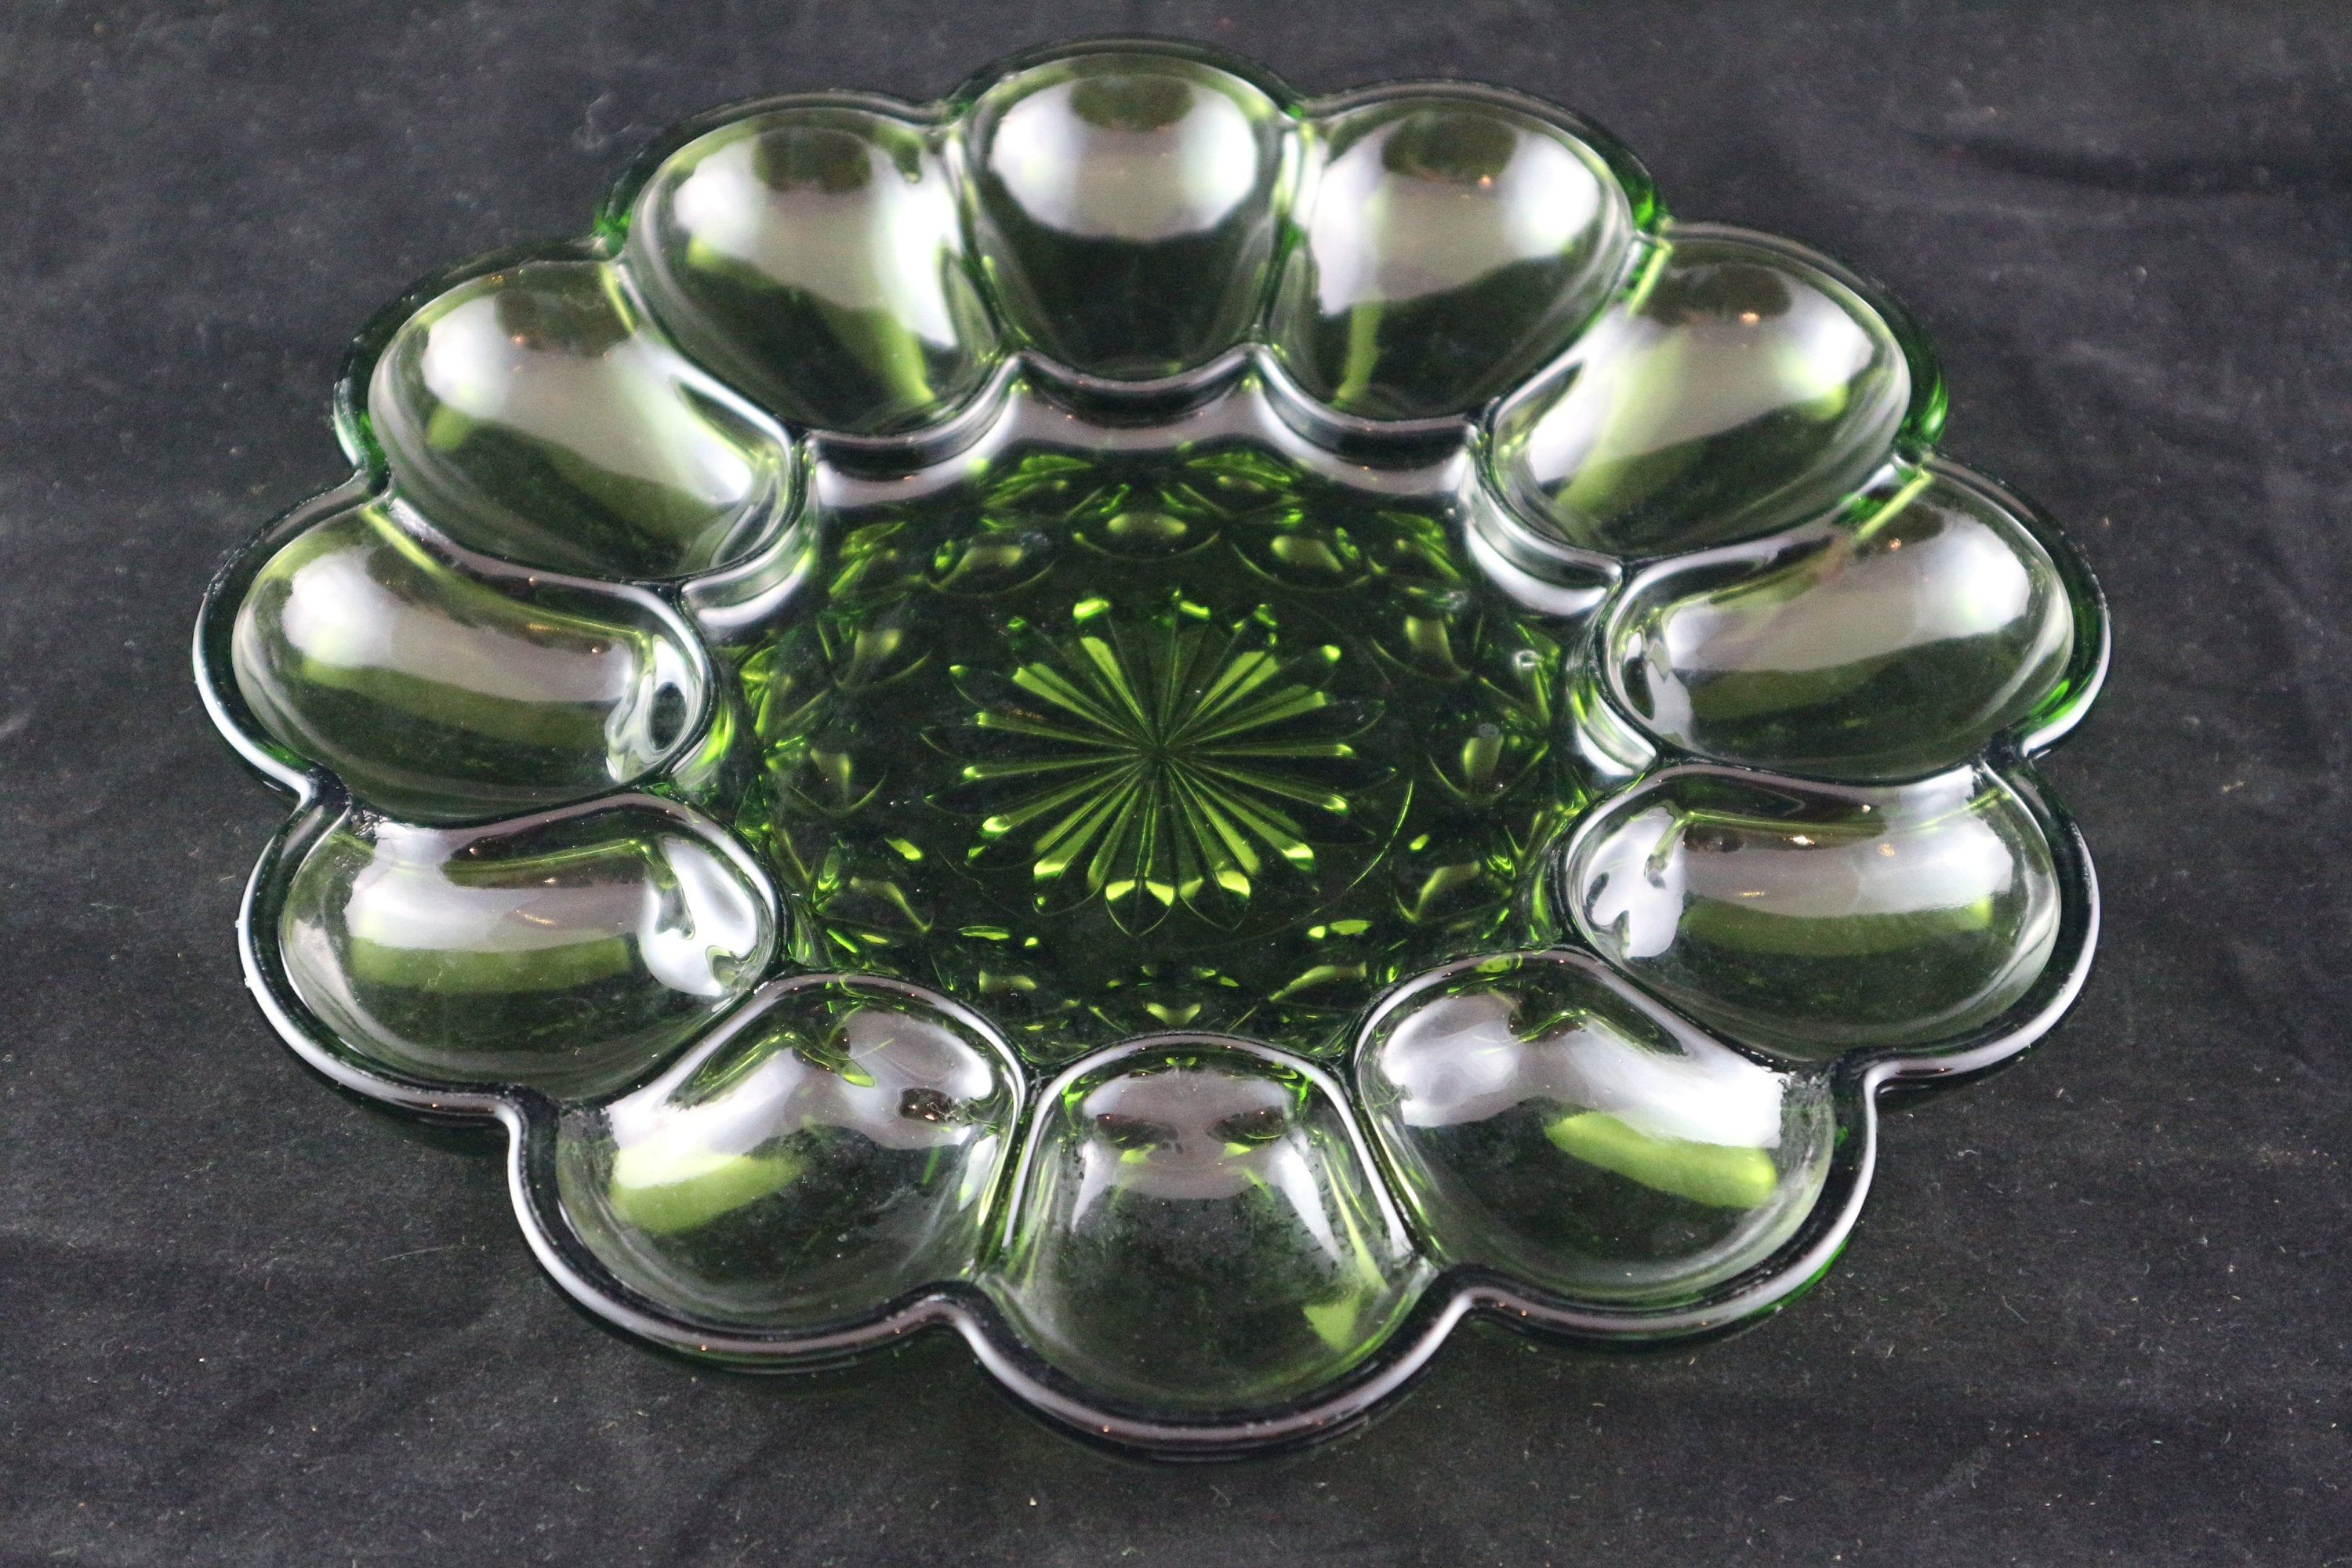 Chairs Just 1950s Bowl Anbiet Shell Rockabilly Design Vintage Serving Plate 50s Glass Sale Price 20th Century